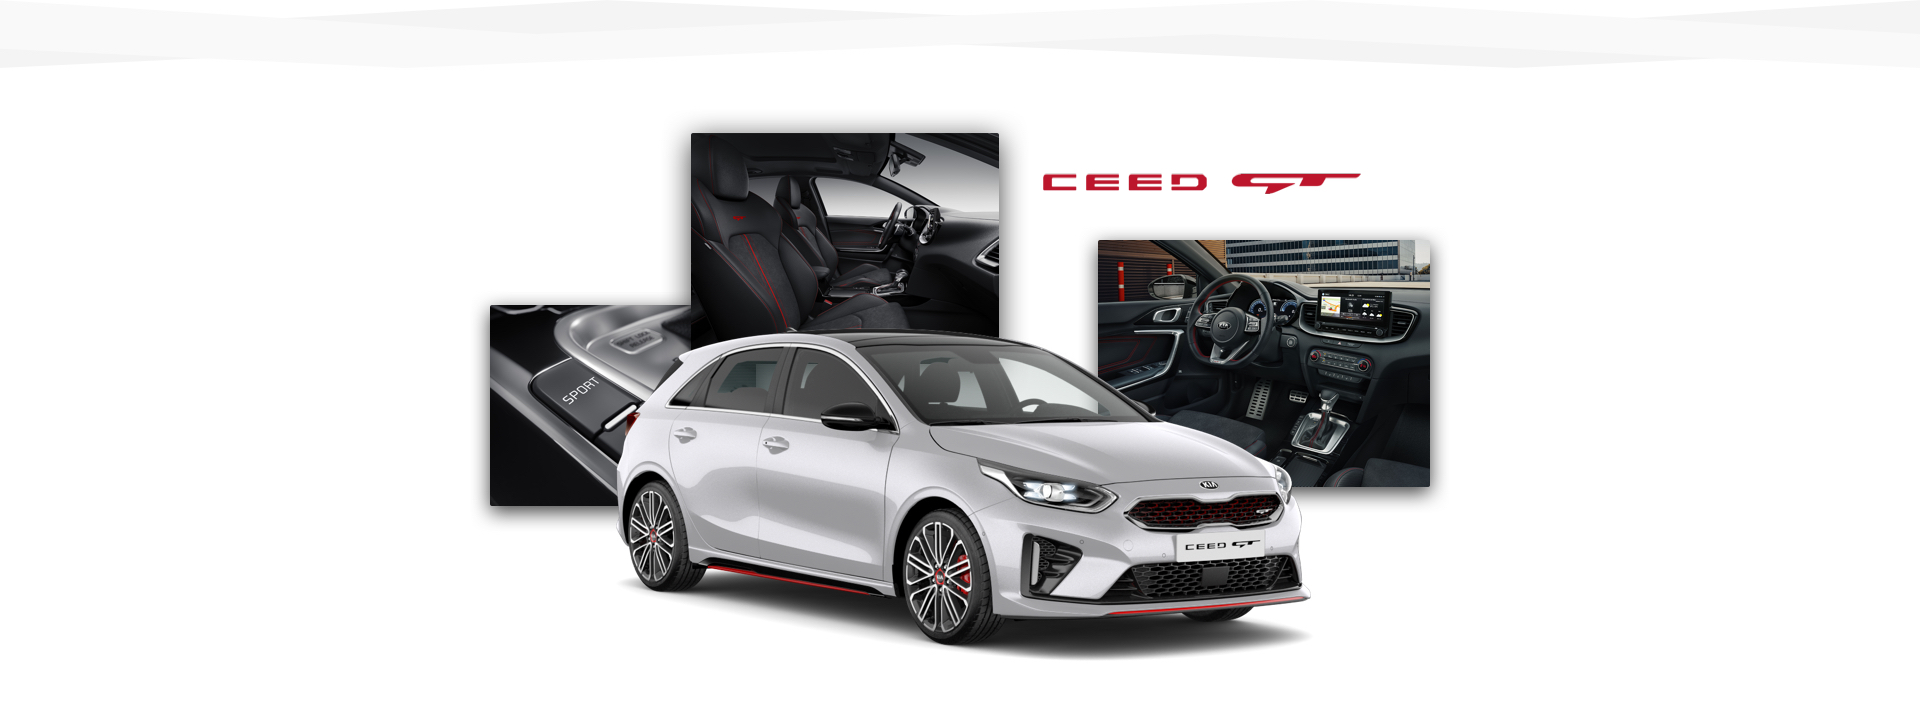 Side view of the Kia Ceed GT and shots of its interior and various controls